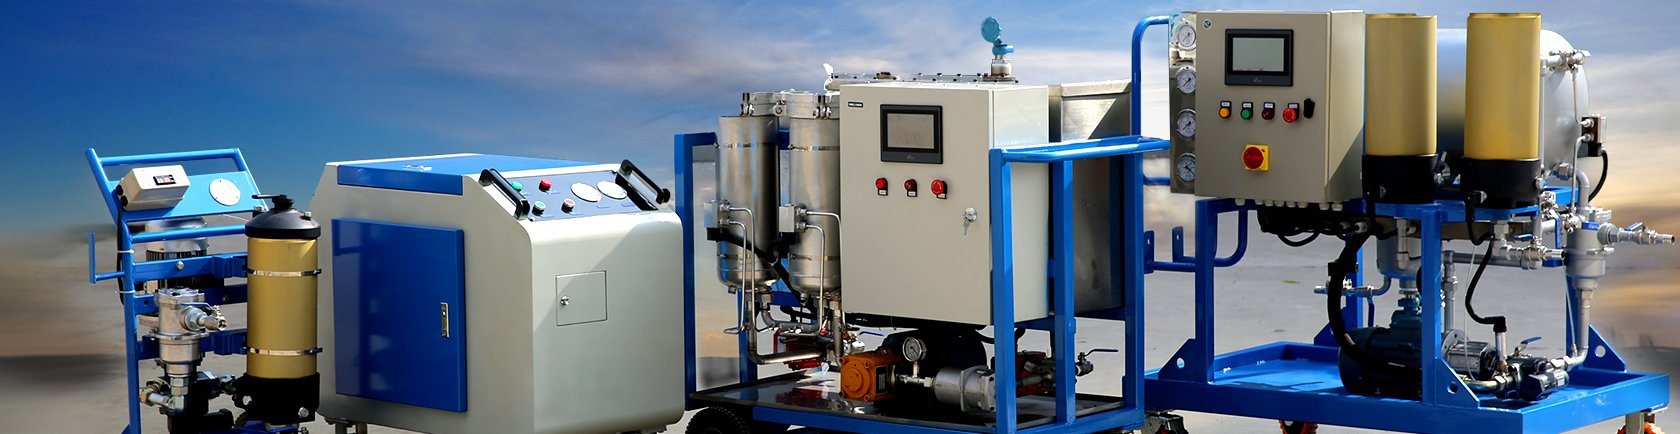 industrial oil filtration systems